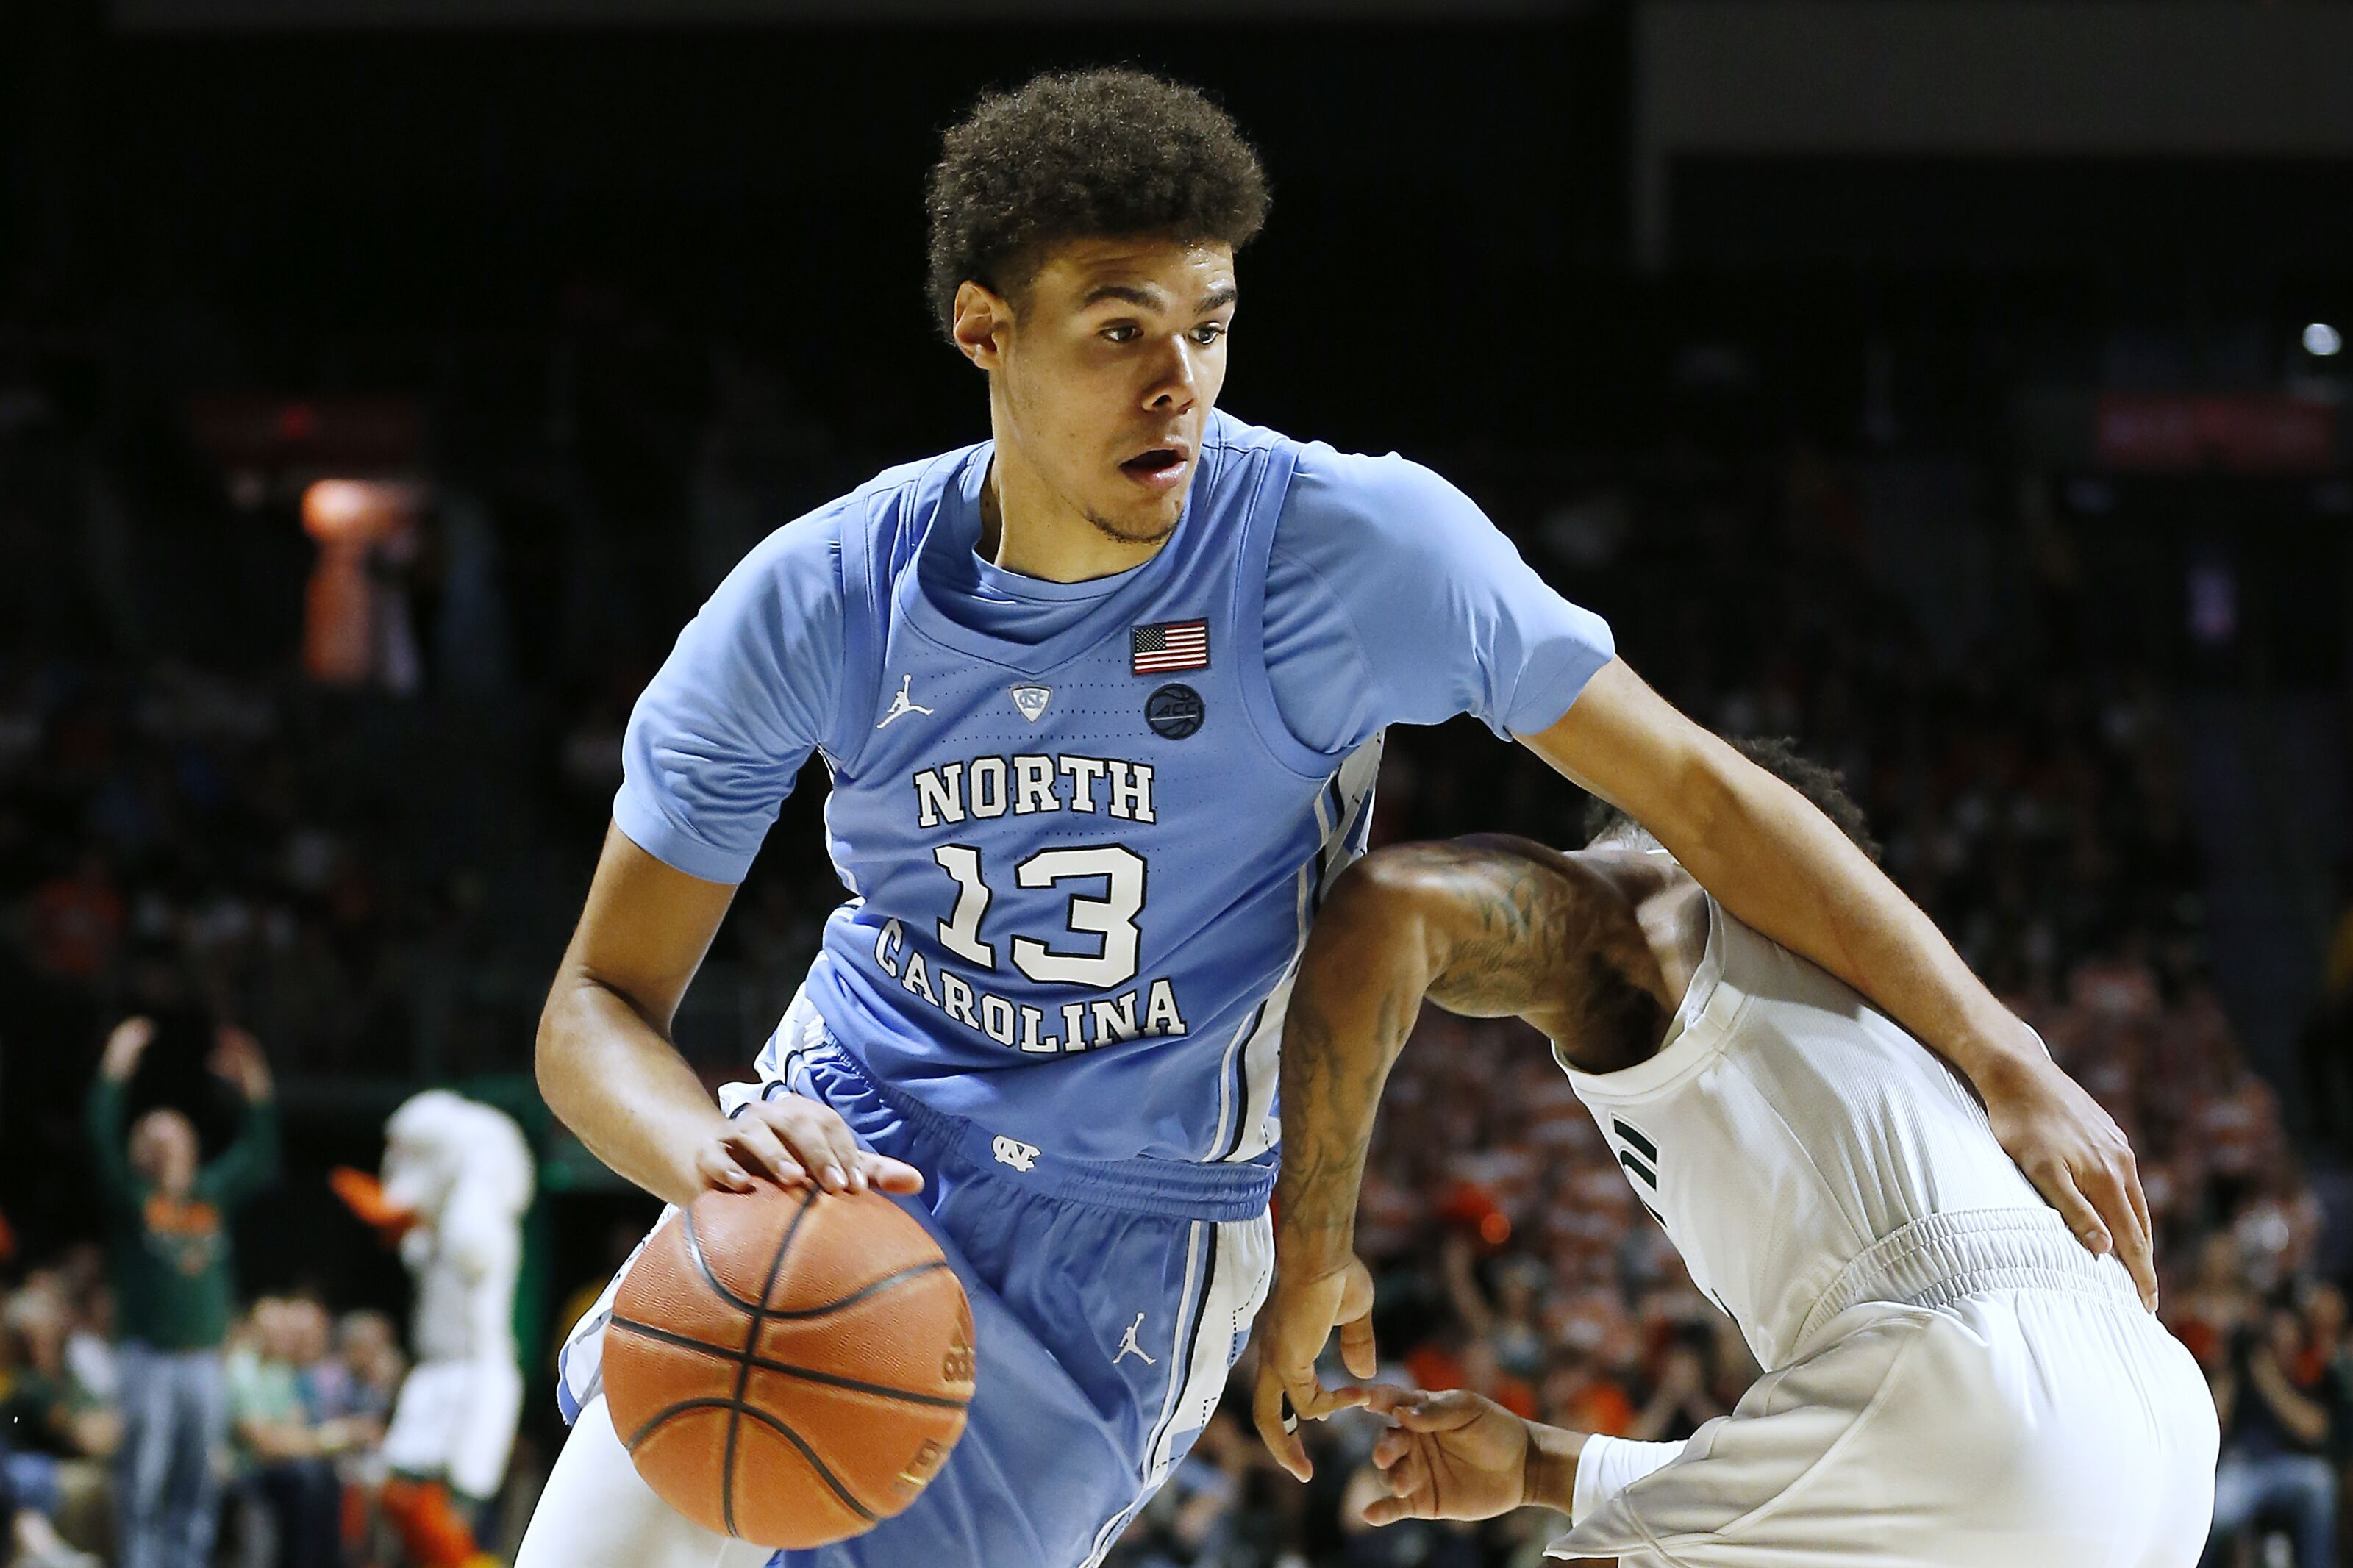 UNC Basketball: Luke Maye, Cam Johnson and Coby White named All-ACC